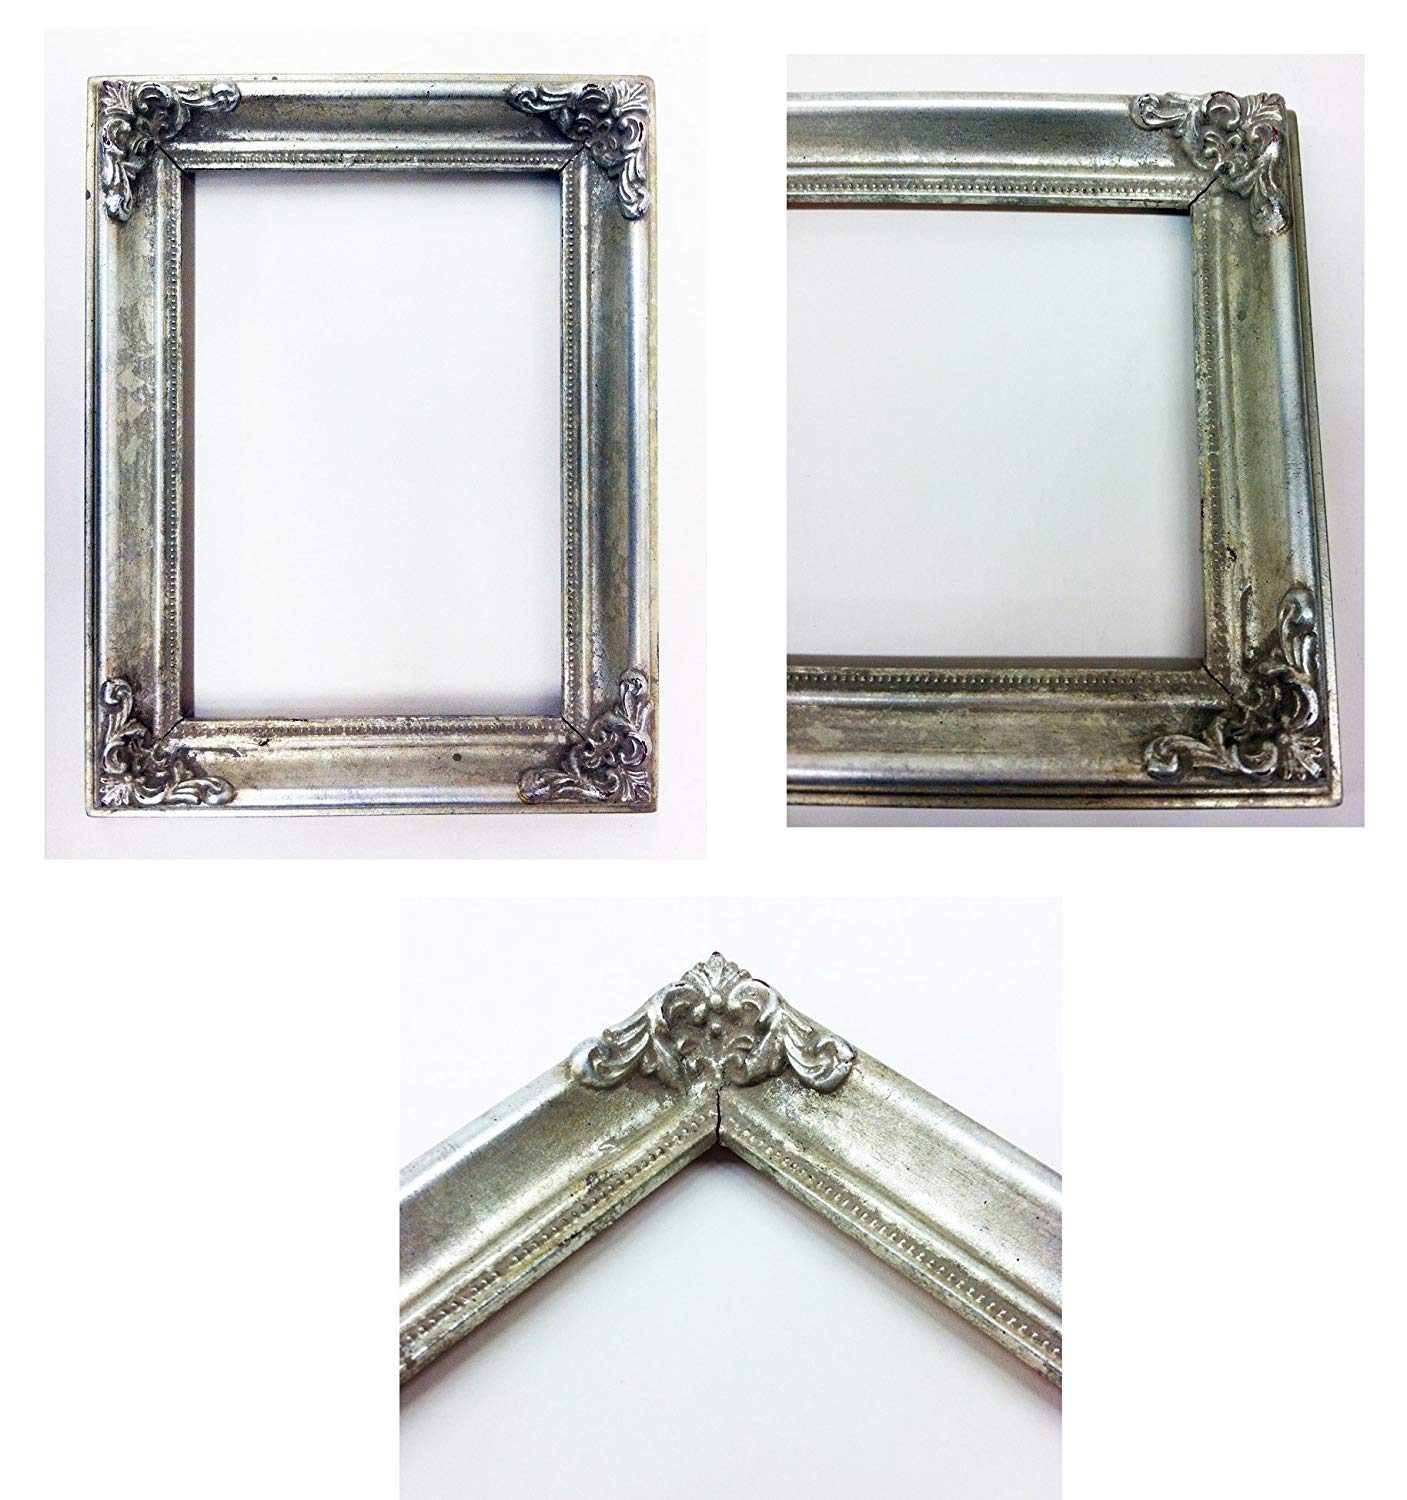 "Vintage Picture Frame Ornate Metallic Baroque Wooden Frames (5""x7"") Shabby Chic (Silver)"